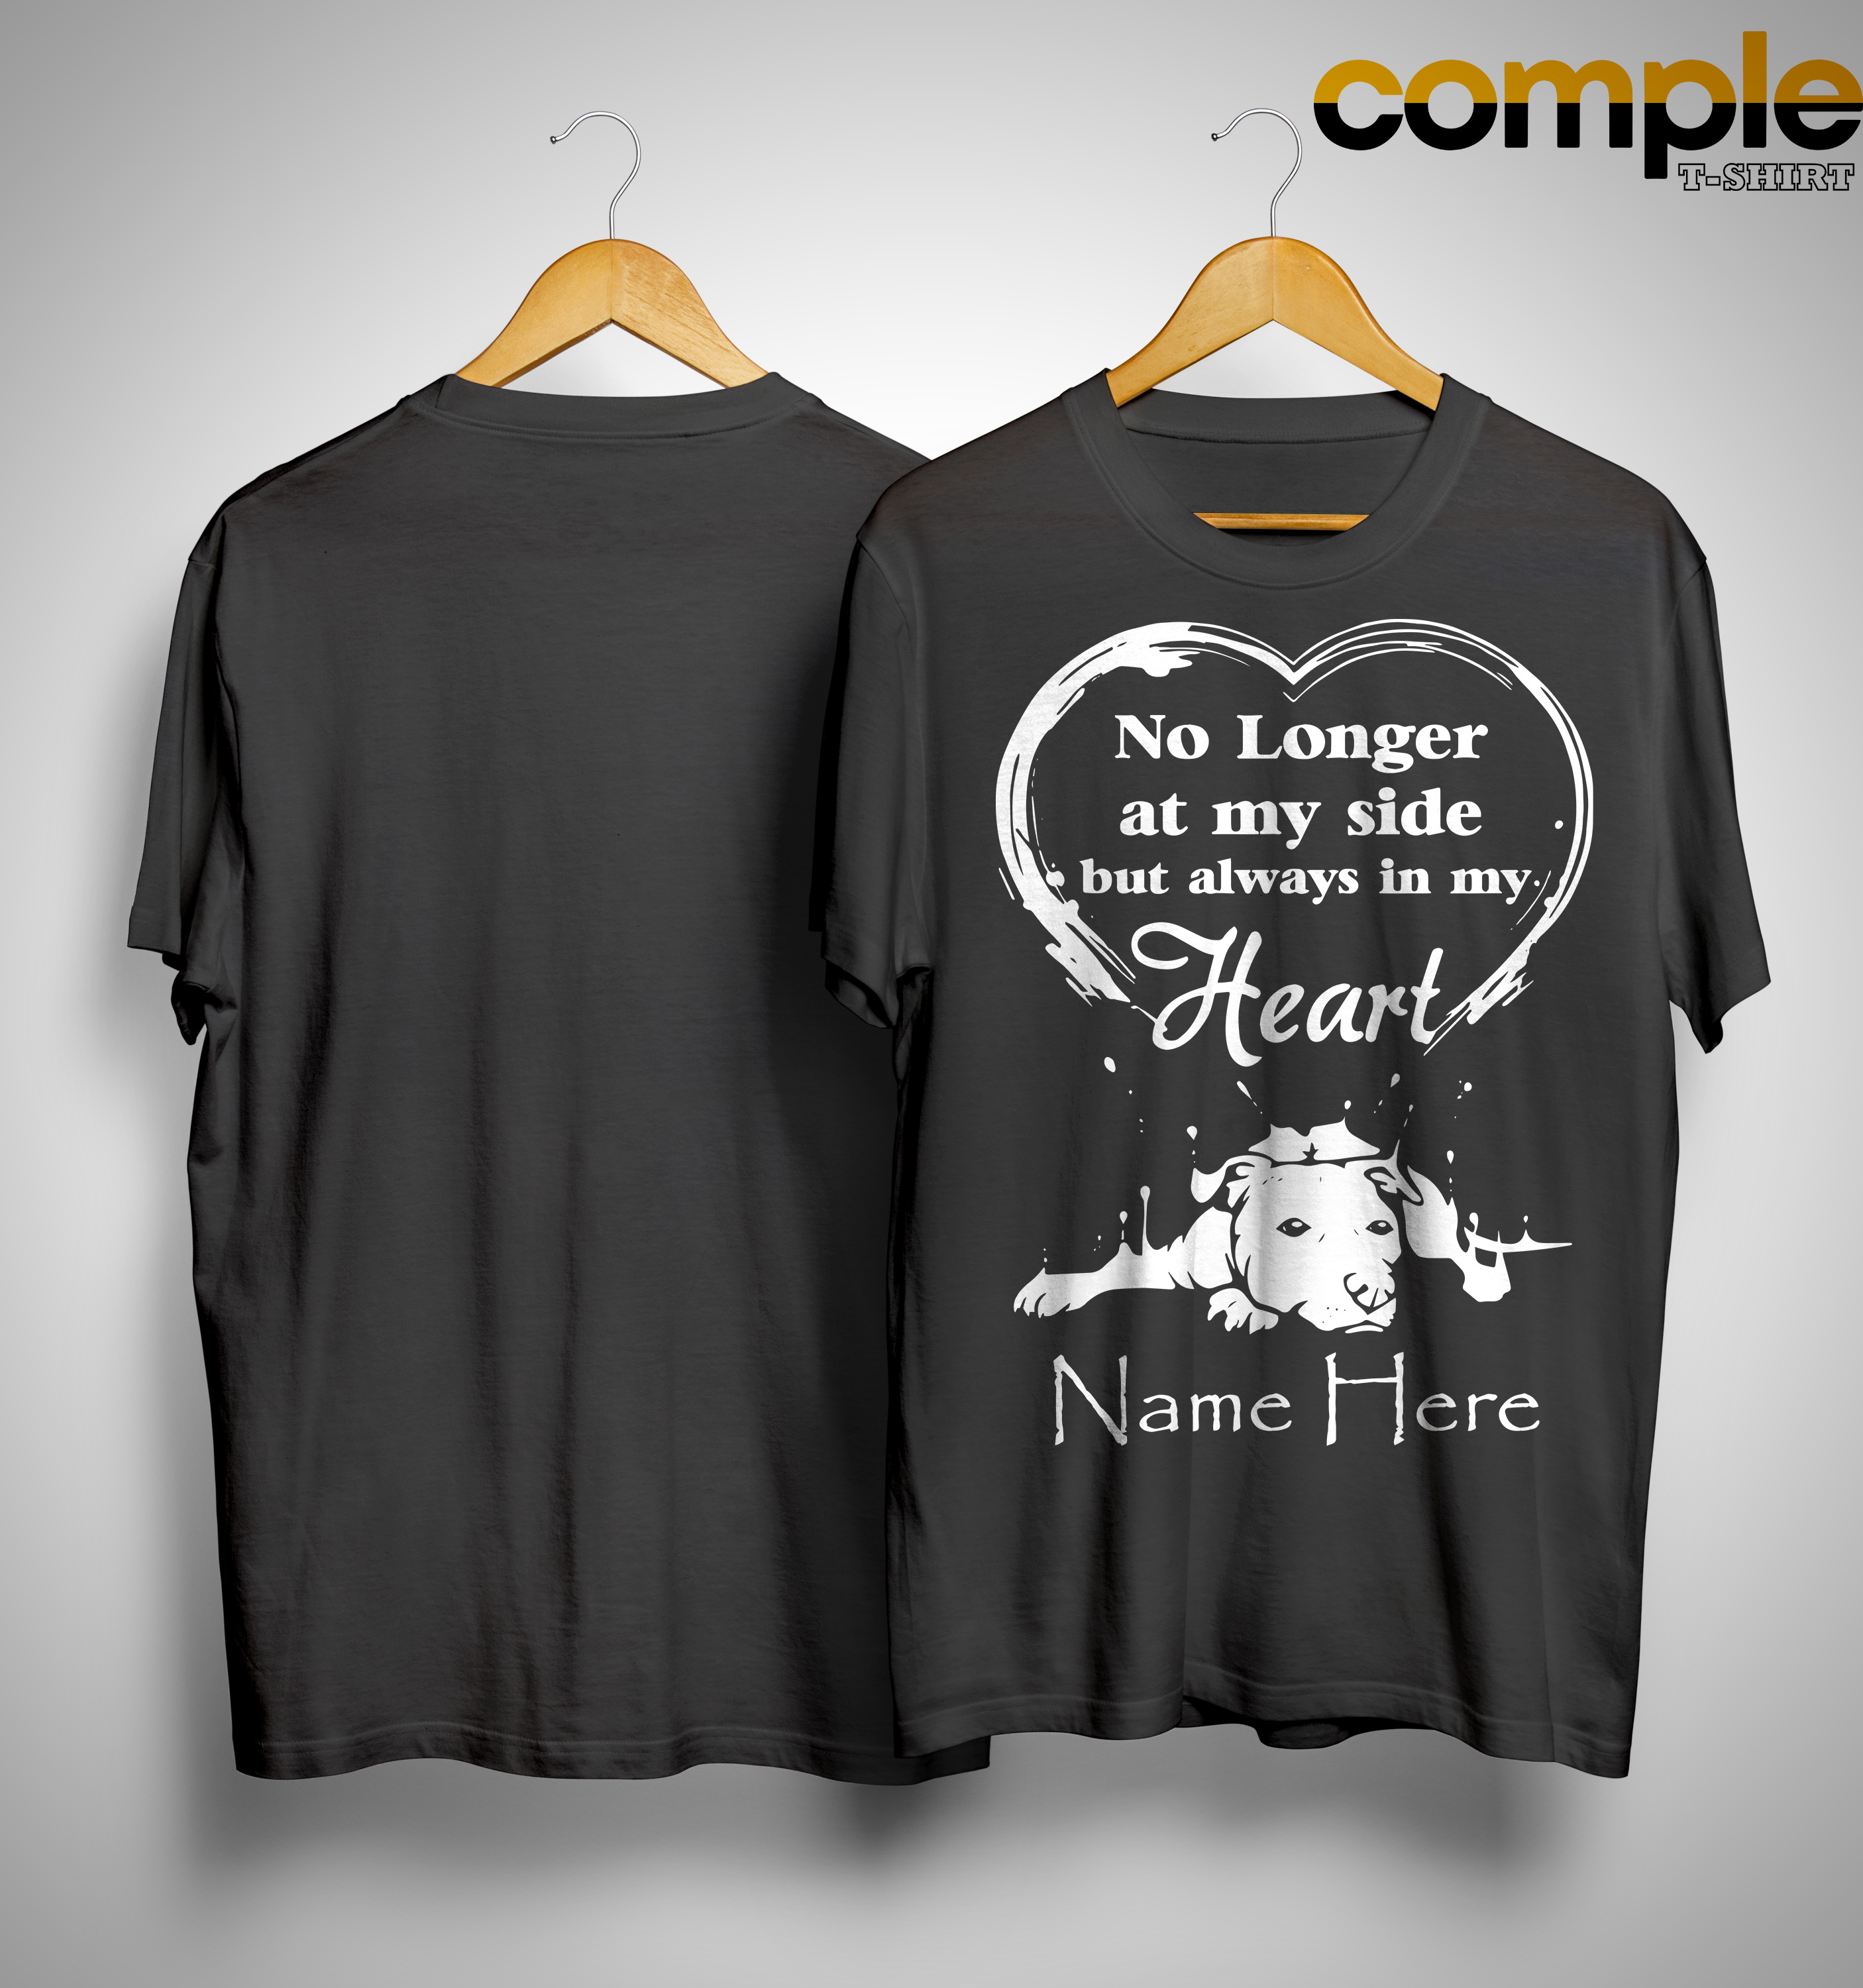 No Longer At My Side But Always In My Heart Name Here Shirt